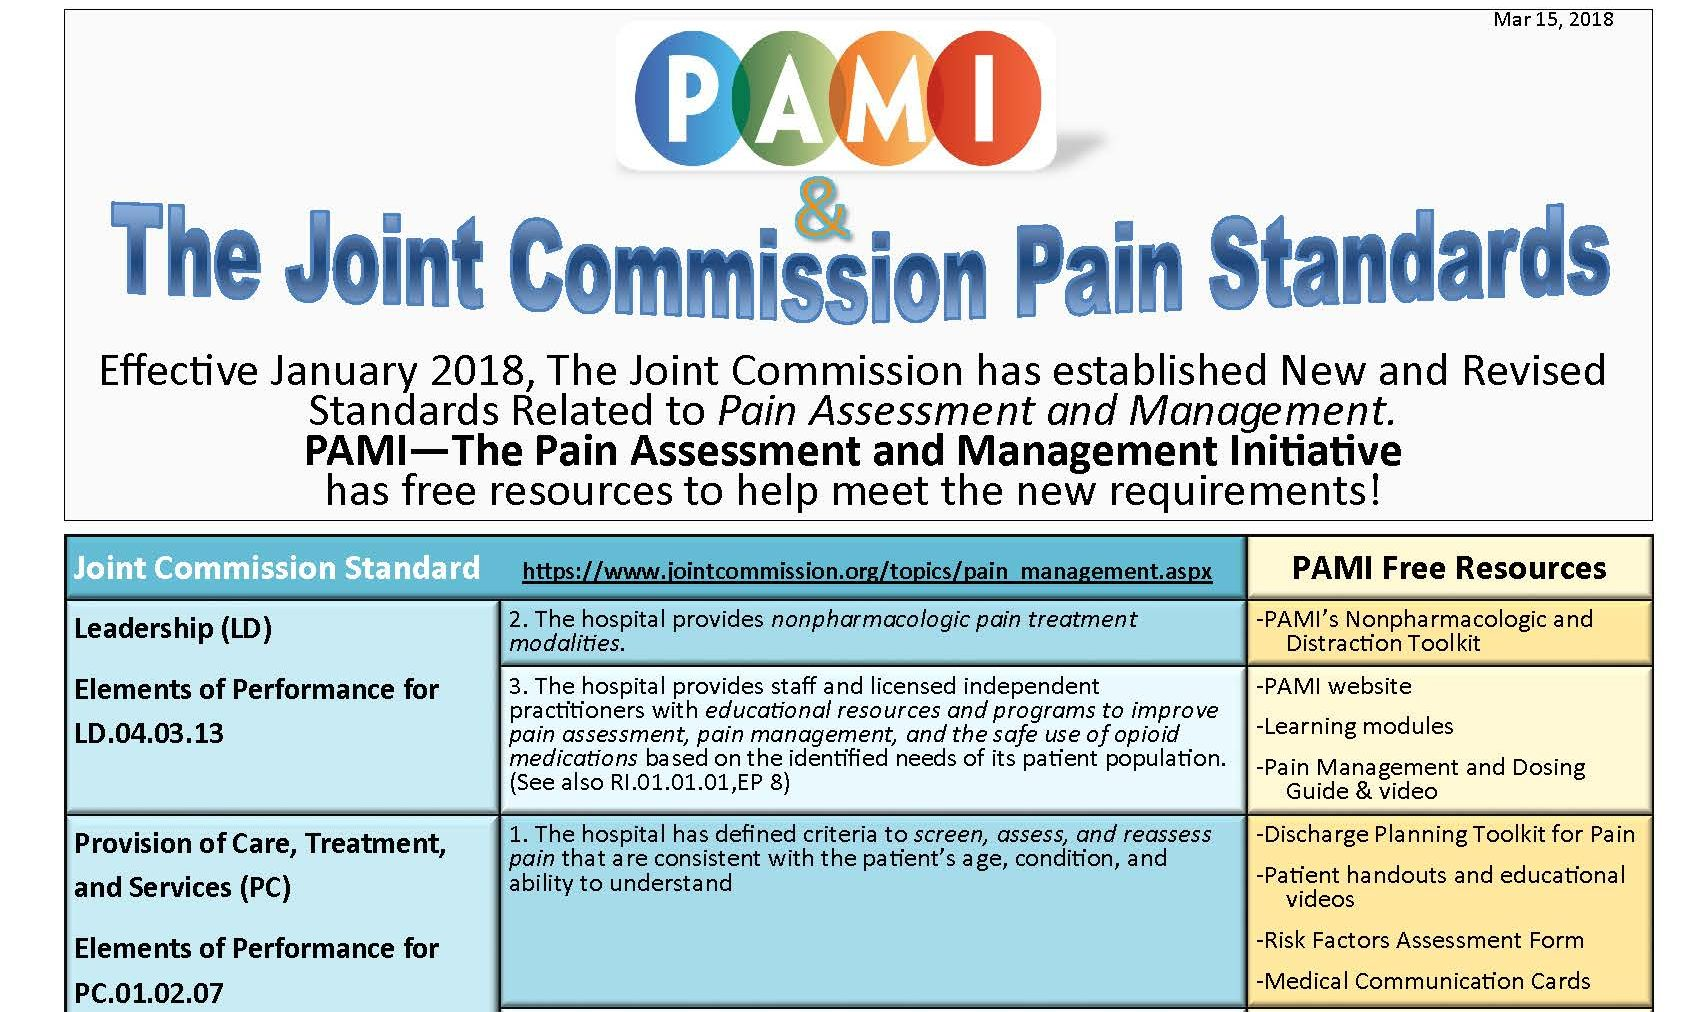 PAMI and The Joint Commission Pain Standards » Pain